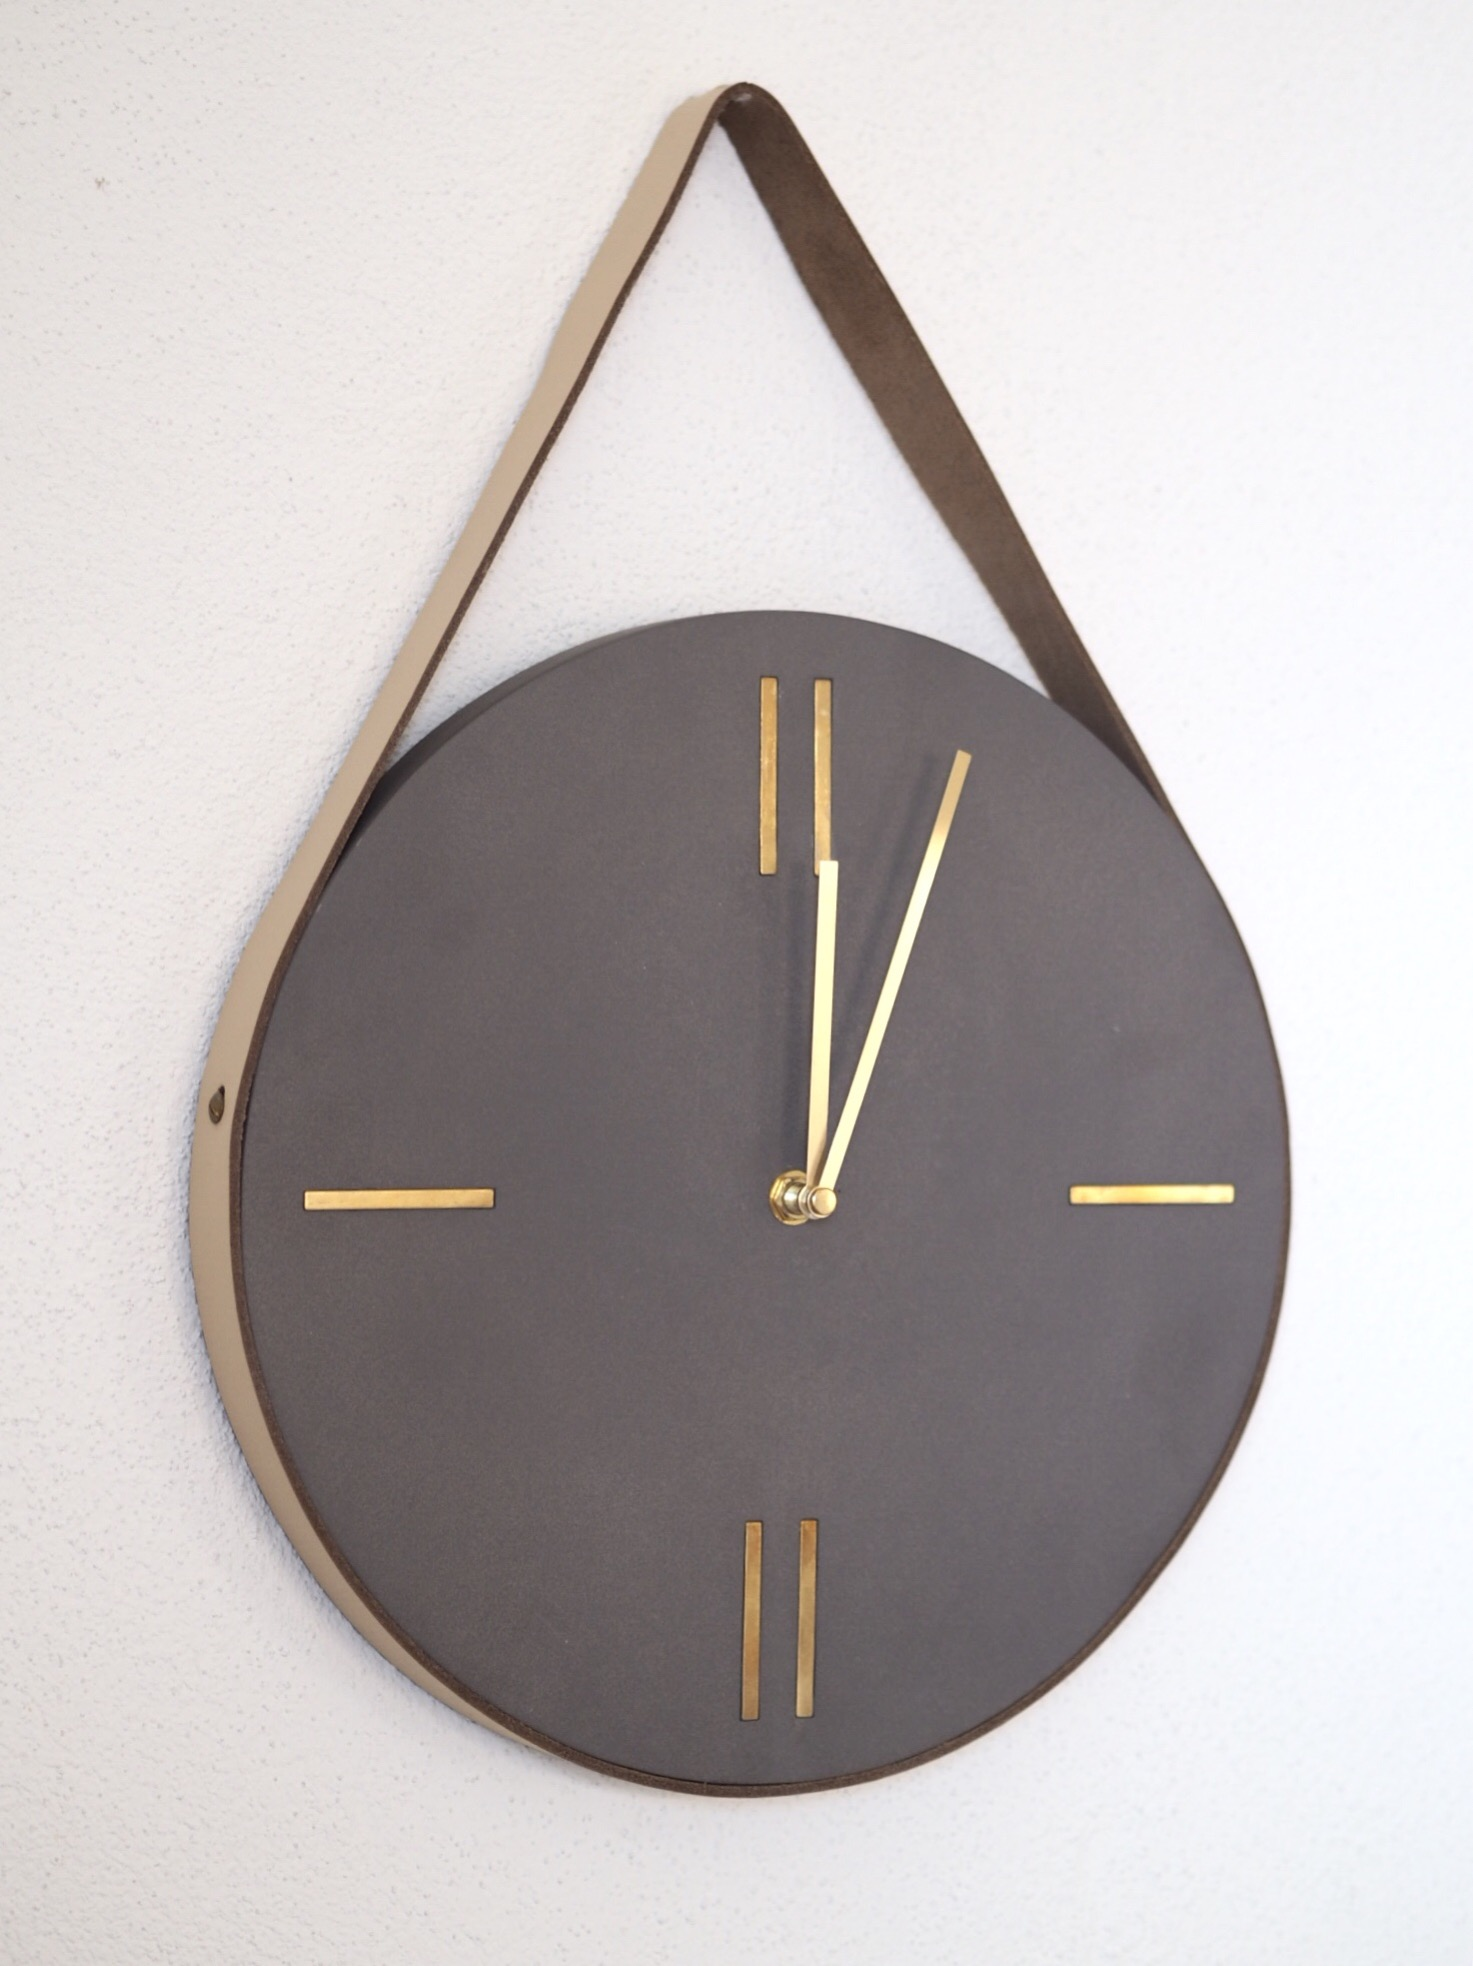 Cult Furniture Clock